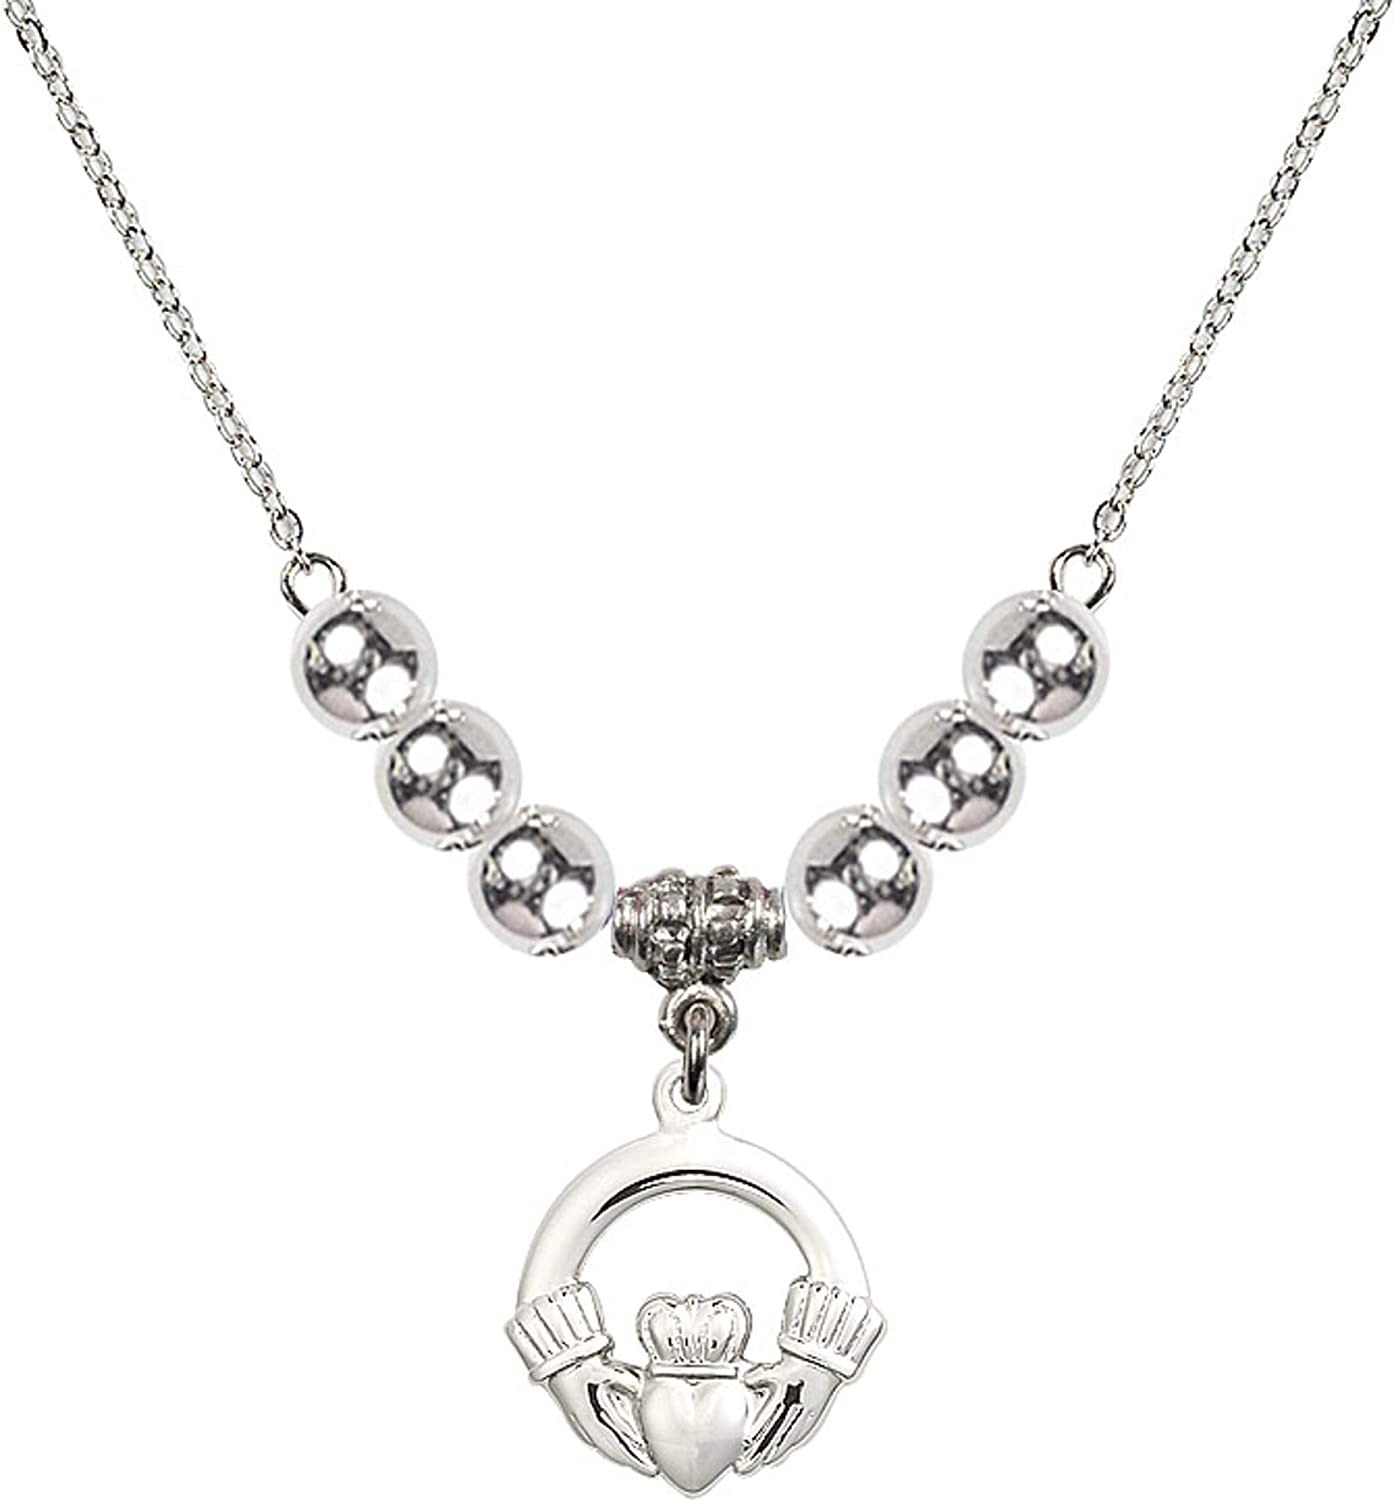 Bonyak Jewelry 18 Inch Rhodium Plated Necklace w// 6mm Sterling Silver Beads and Claddagh Charm